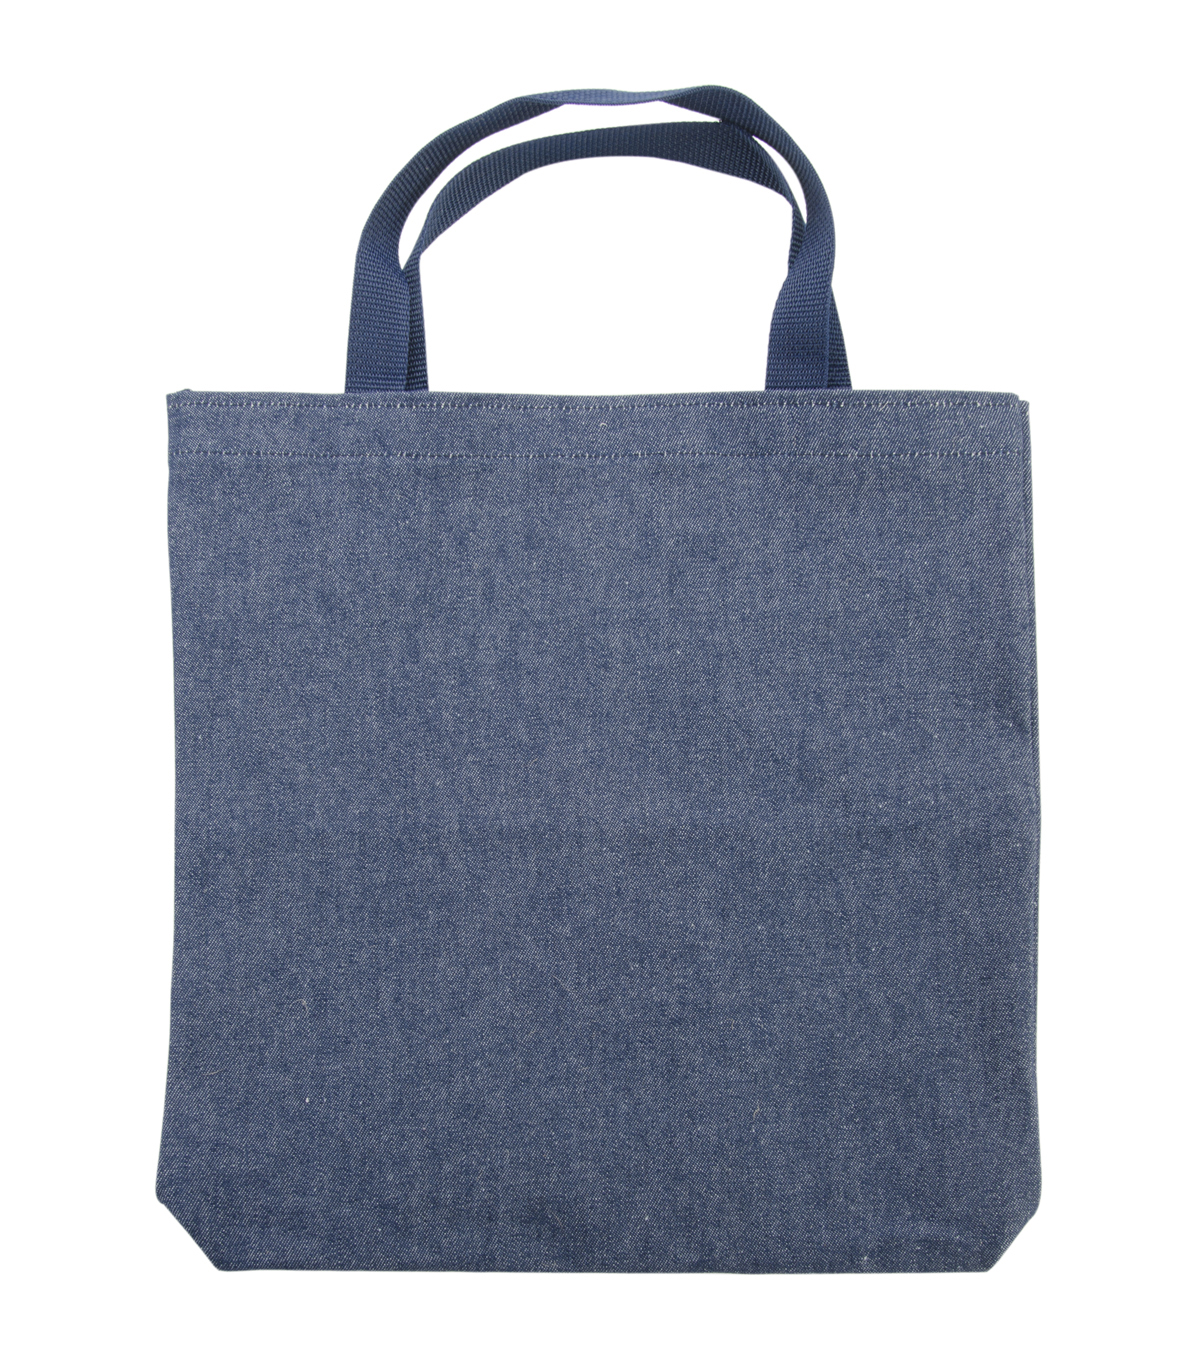 Medium Tote 13.5\u0022X13.5\u0022X2\u0022-Indigo Denim